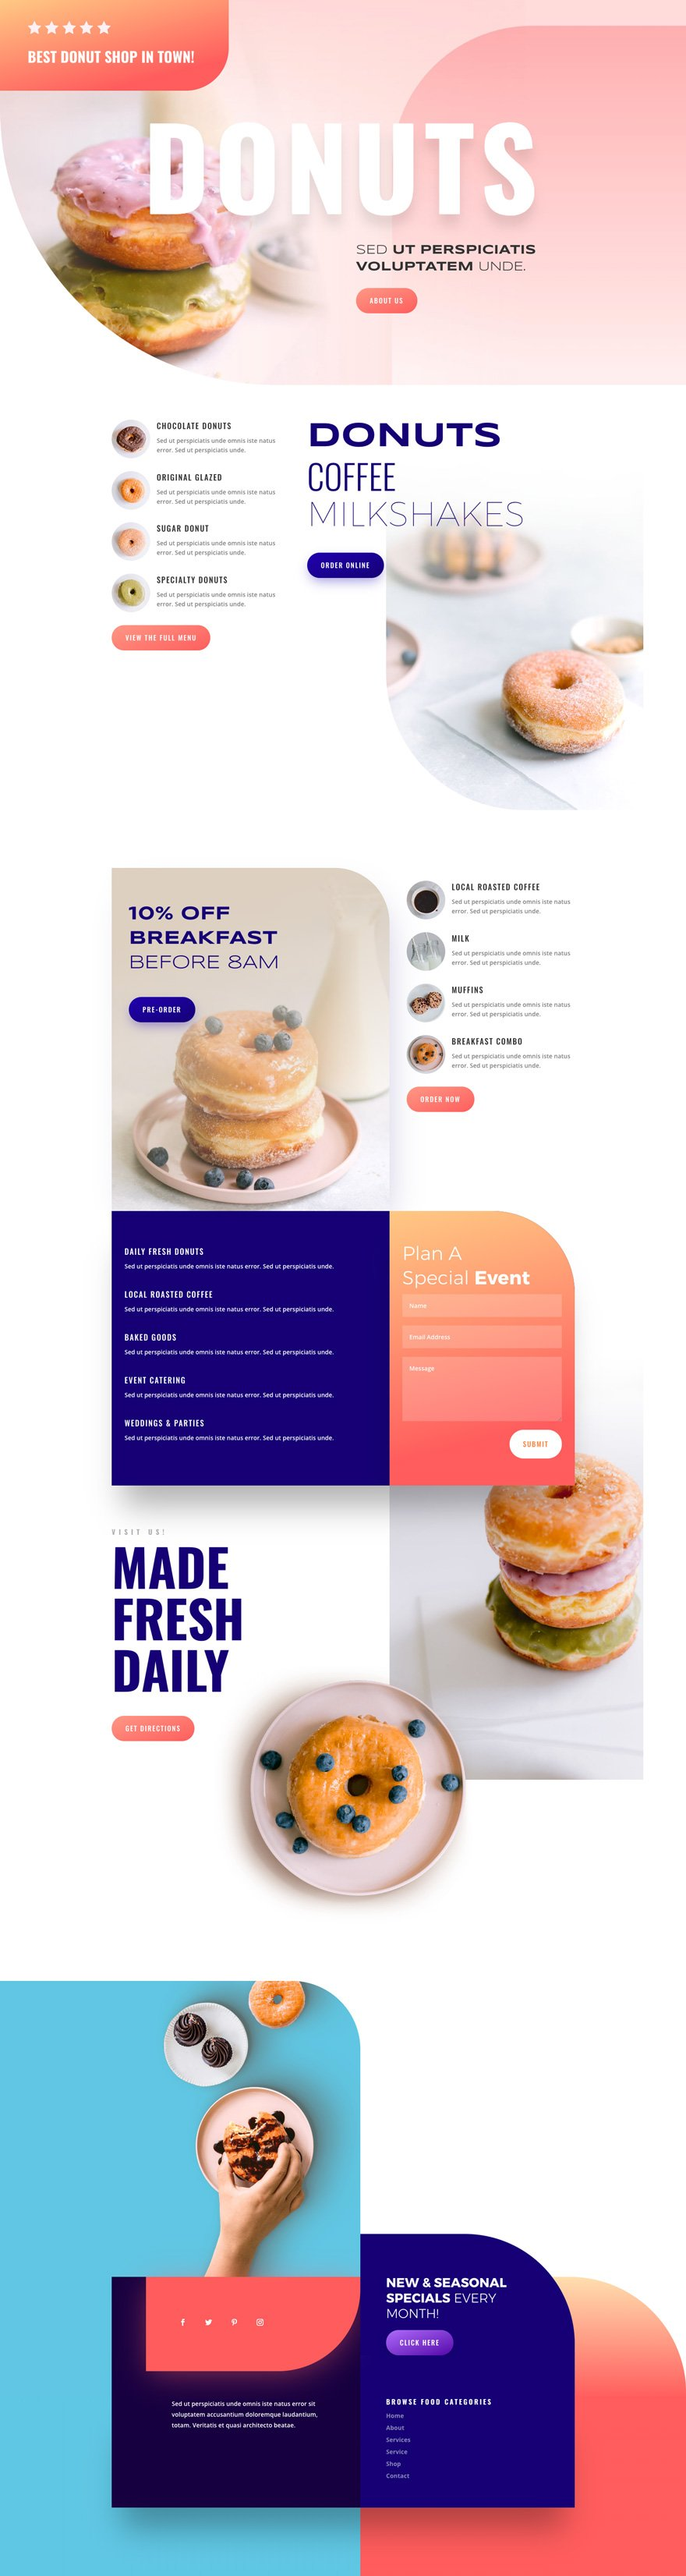 divi donut shop layout pack